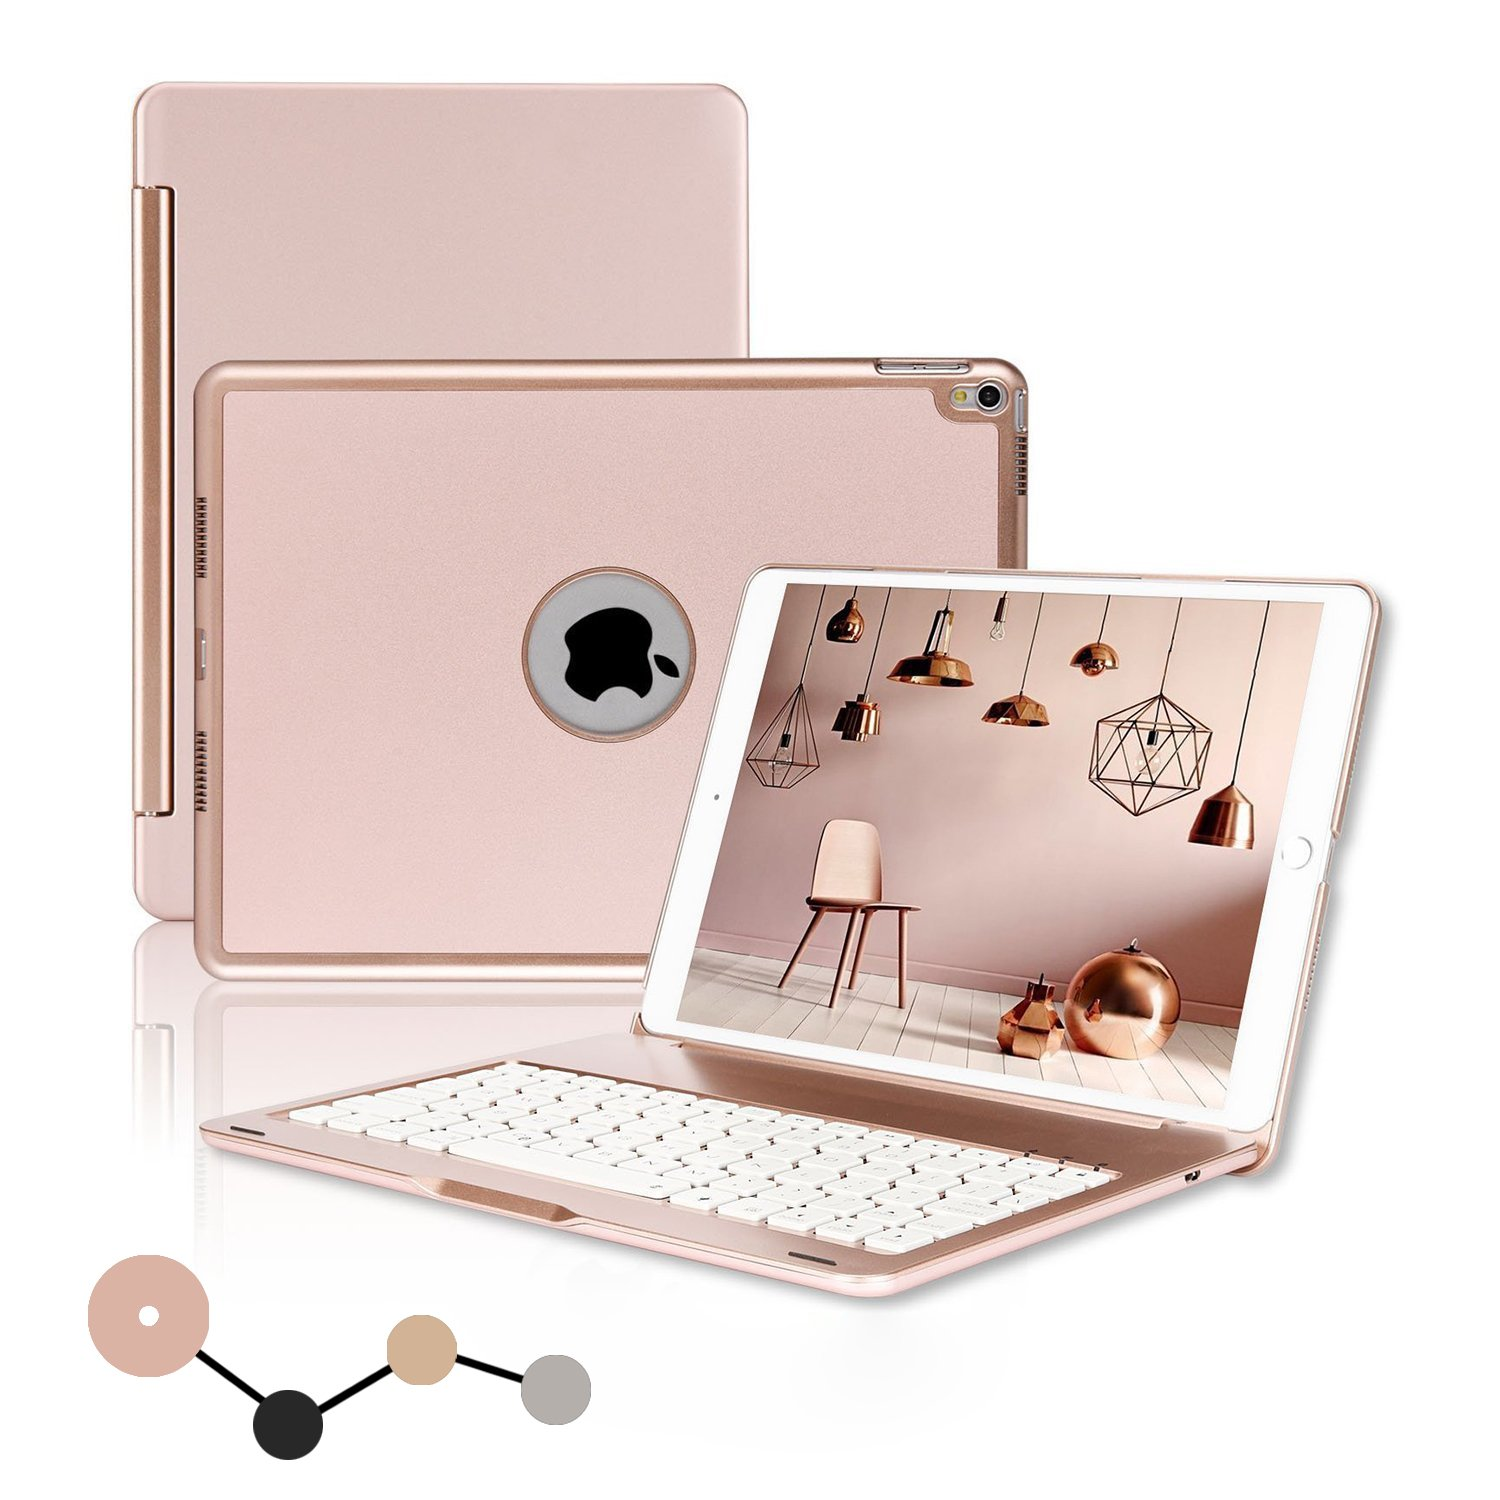 iPad Pro 10.5 Keyboard Case, ONHI Wireless Keyboard Case Aluminum shell Smart Folio Case with 7 Colors Back-lit, Auto Sleep/Wake, Silent Typing (A1701/A1709) (Rose gold) by ONHI